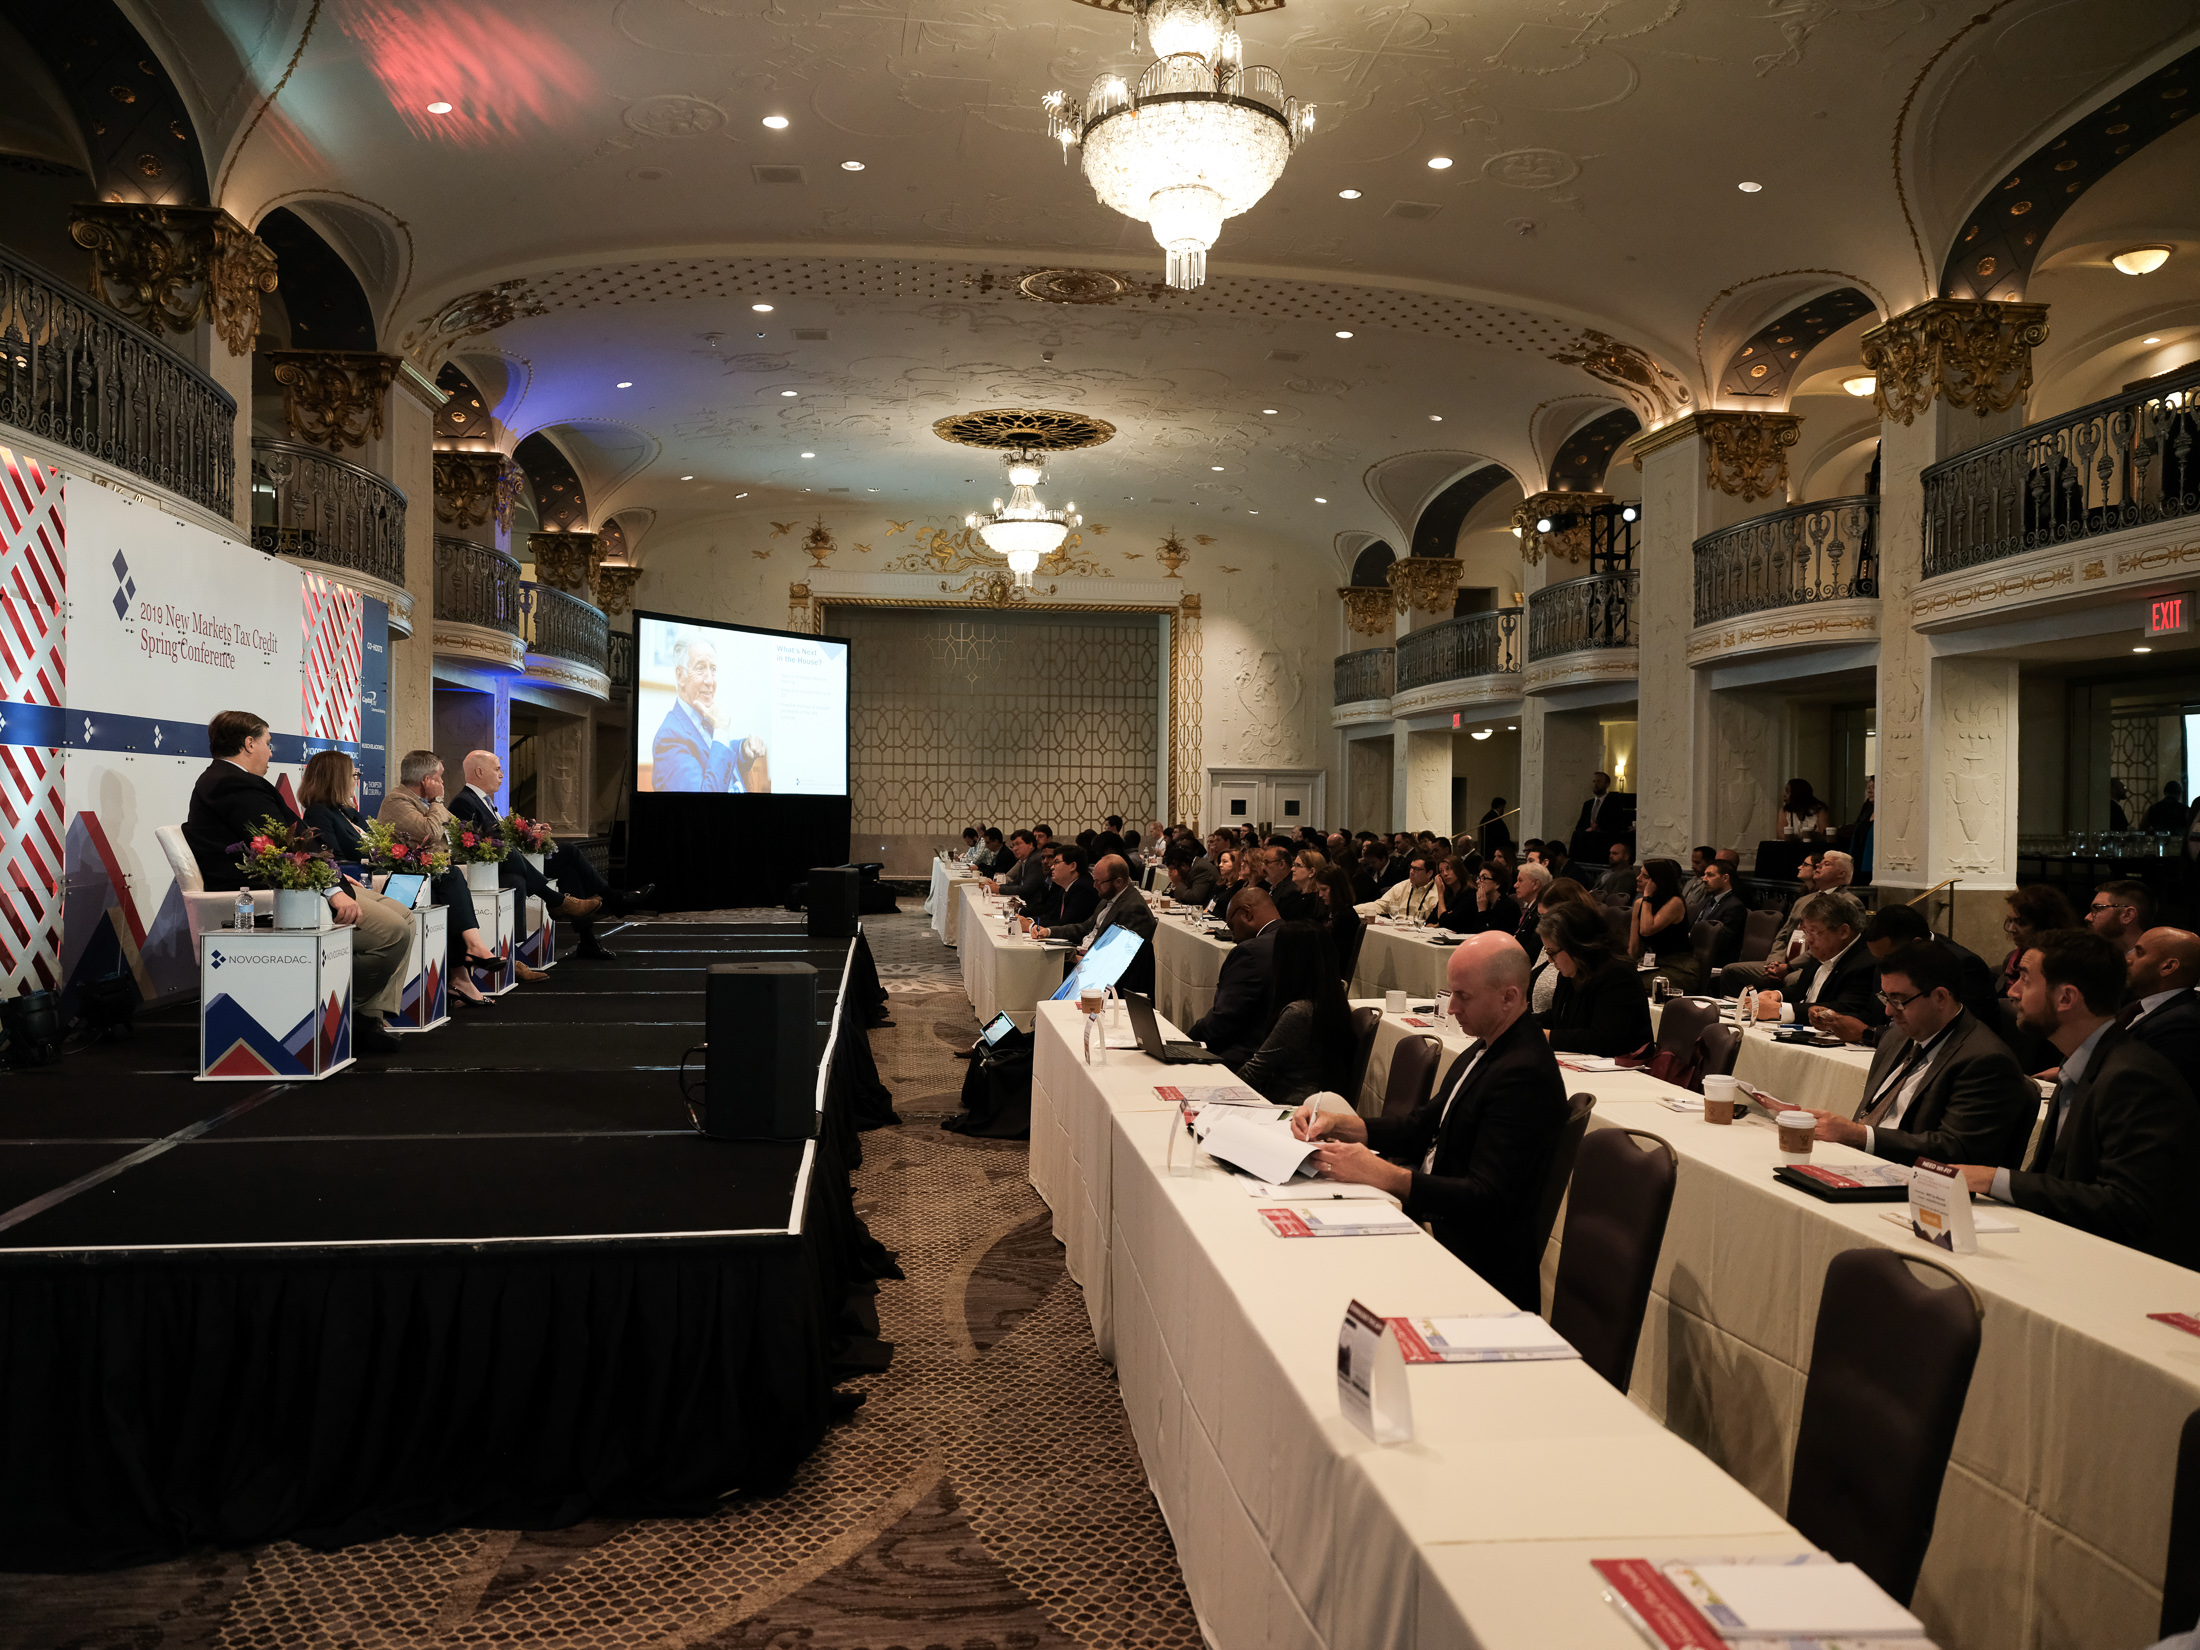 dc-conference-photographer-1458.jpg